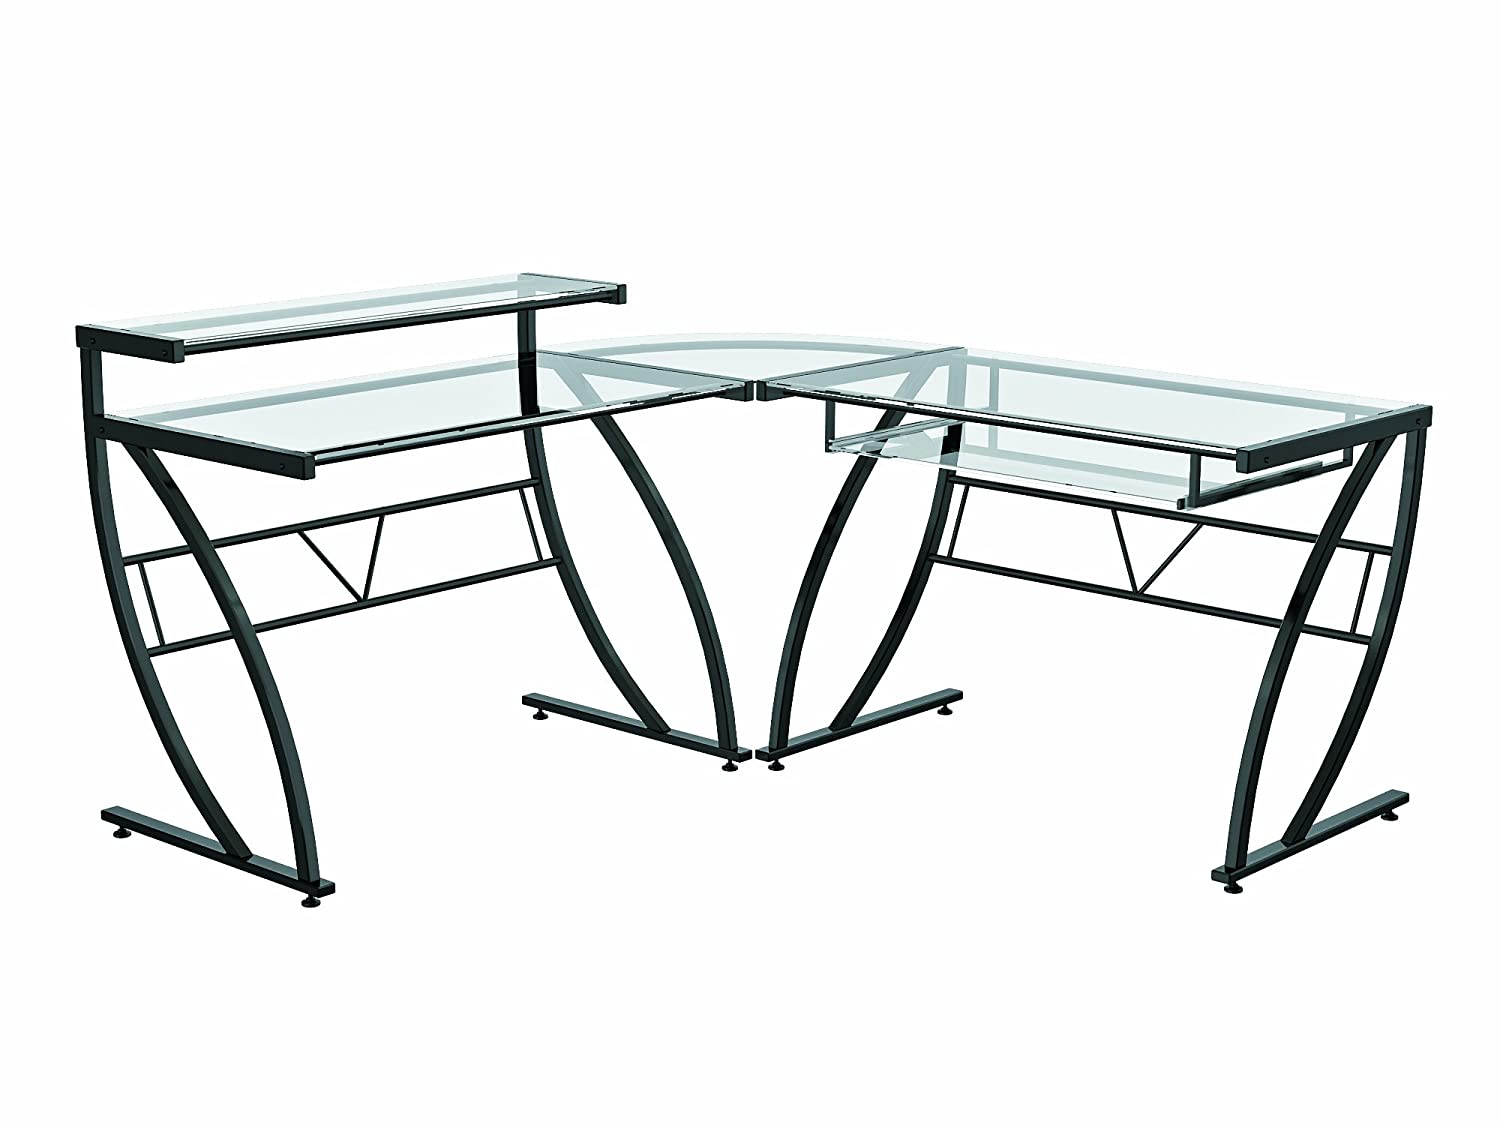 Amazon.com: Z Line Belaire Glass L Shaped Computer Desk: Kitchen U0026 Dining